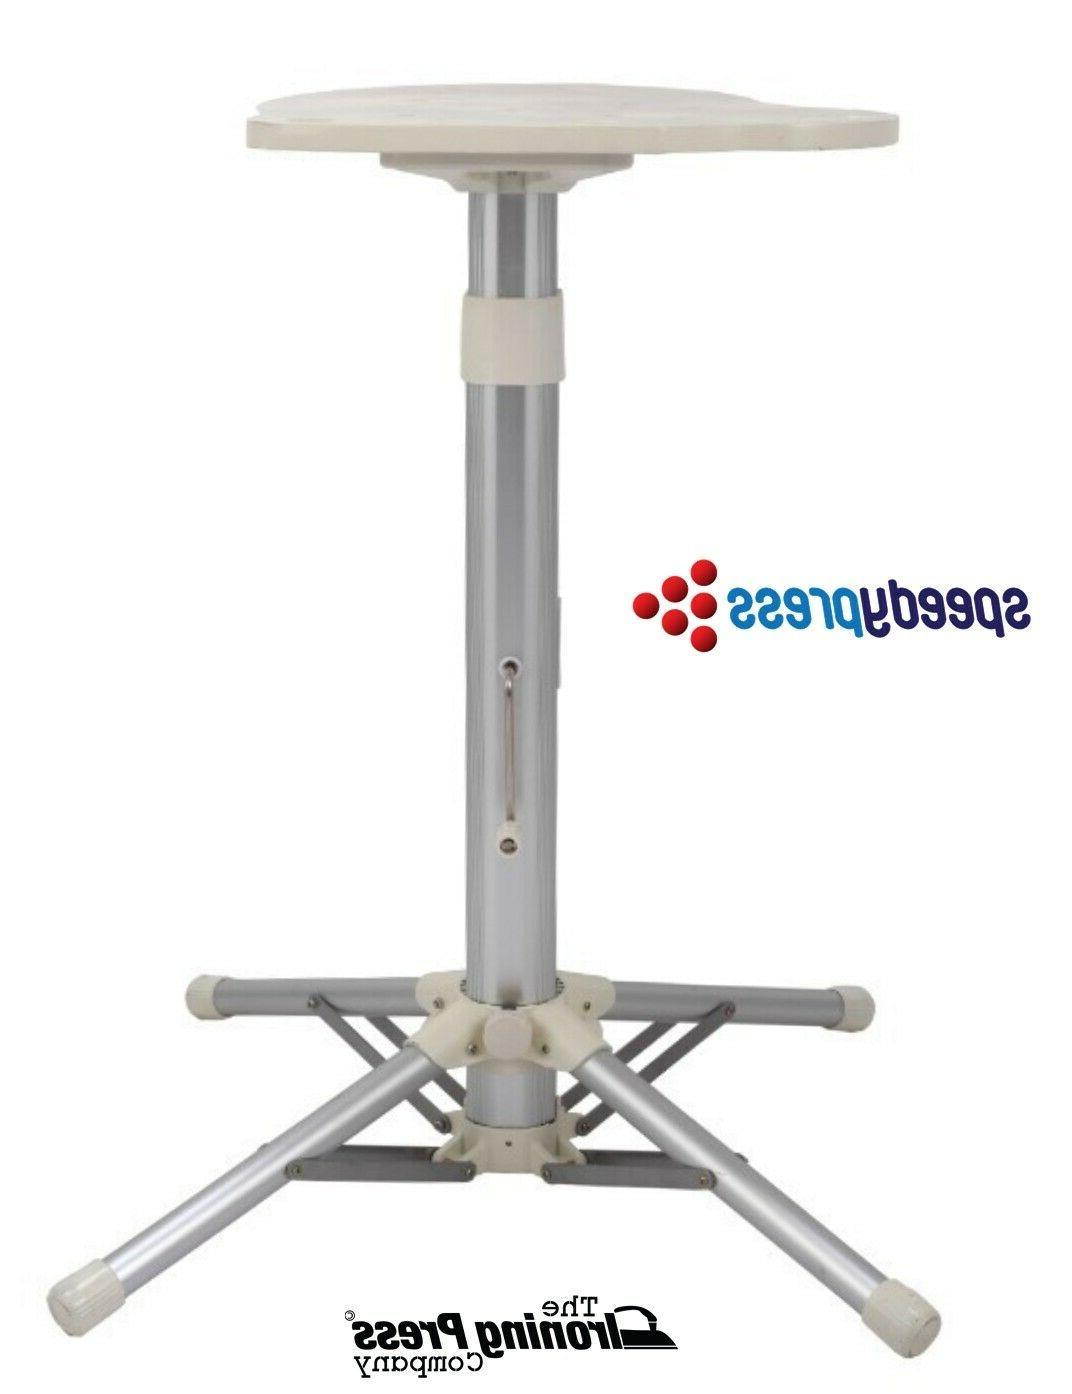 Steam Ironing Press 100HD Heavy Duty Stand Iron, Filter